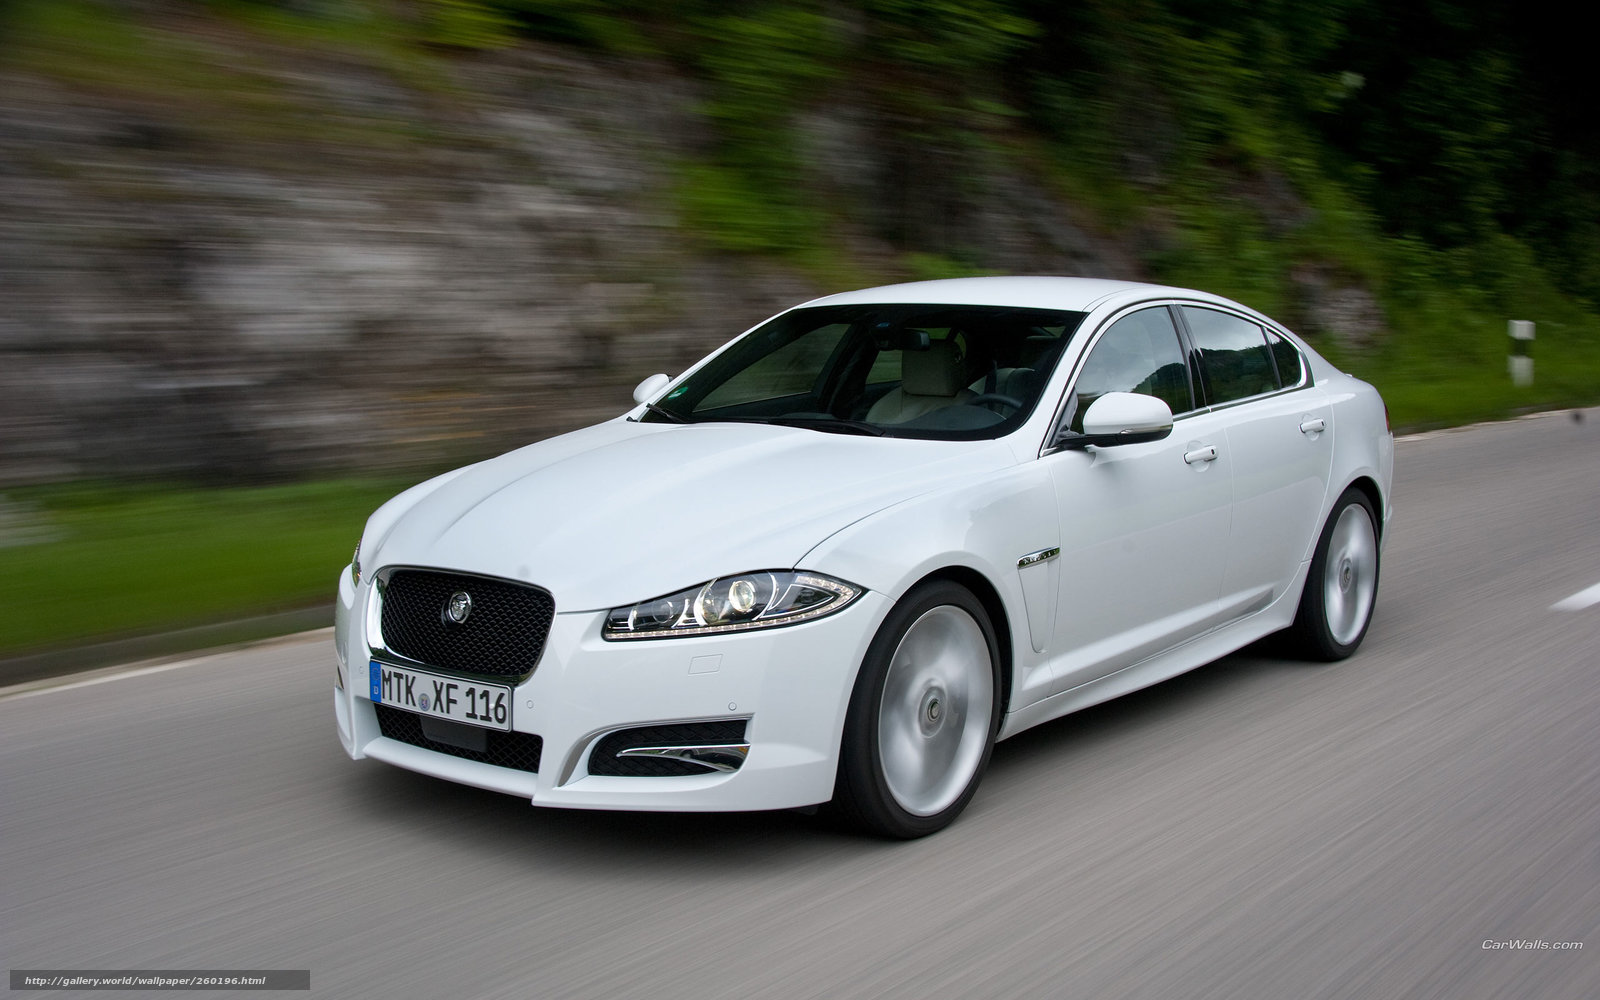 Jaguar Cars Images Download The original file is available